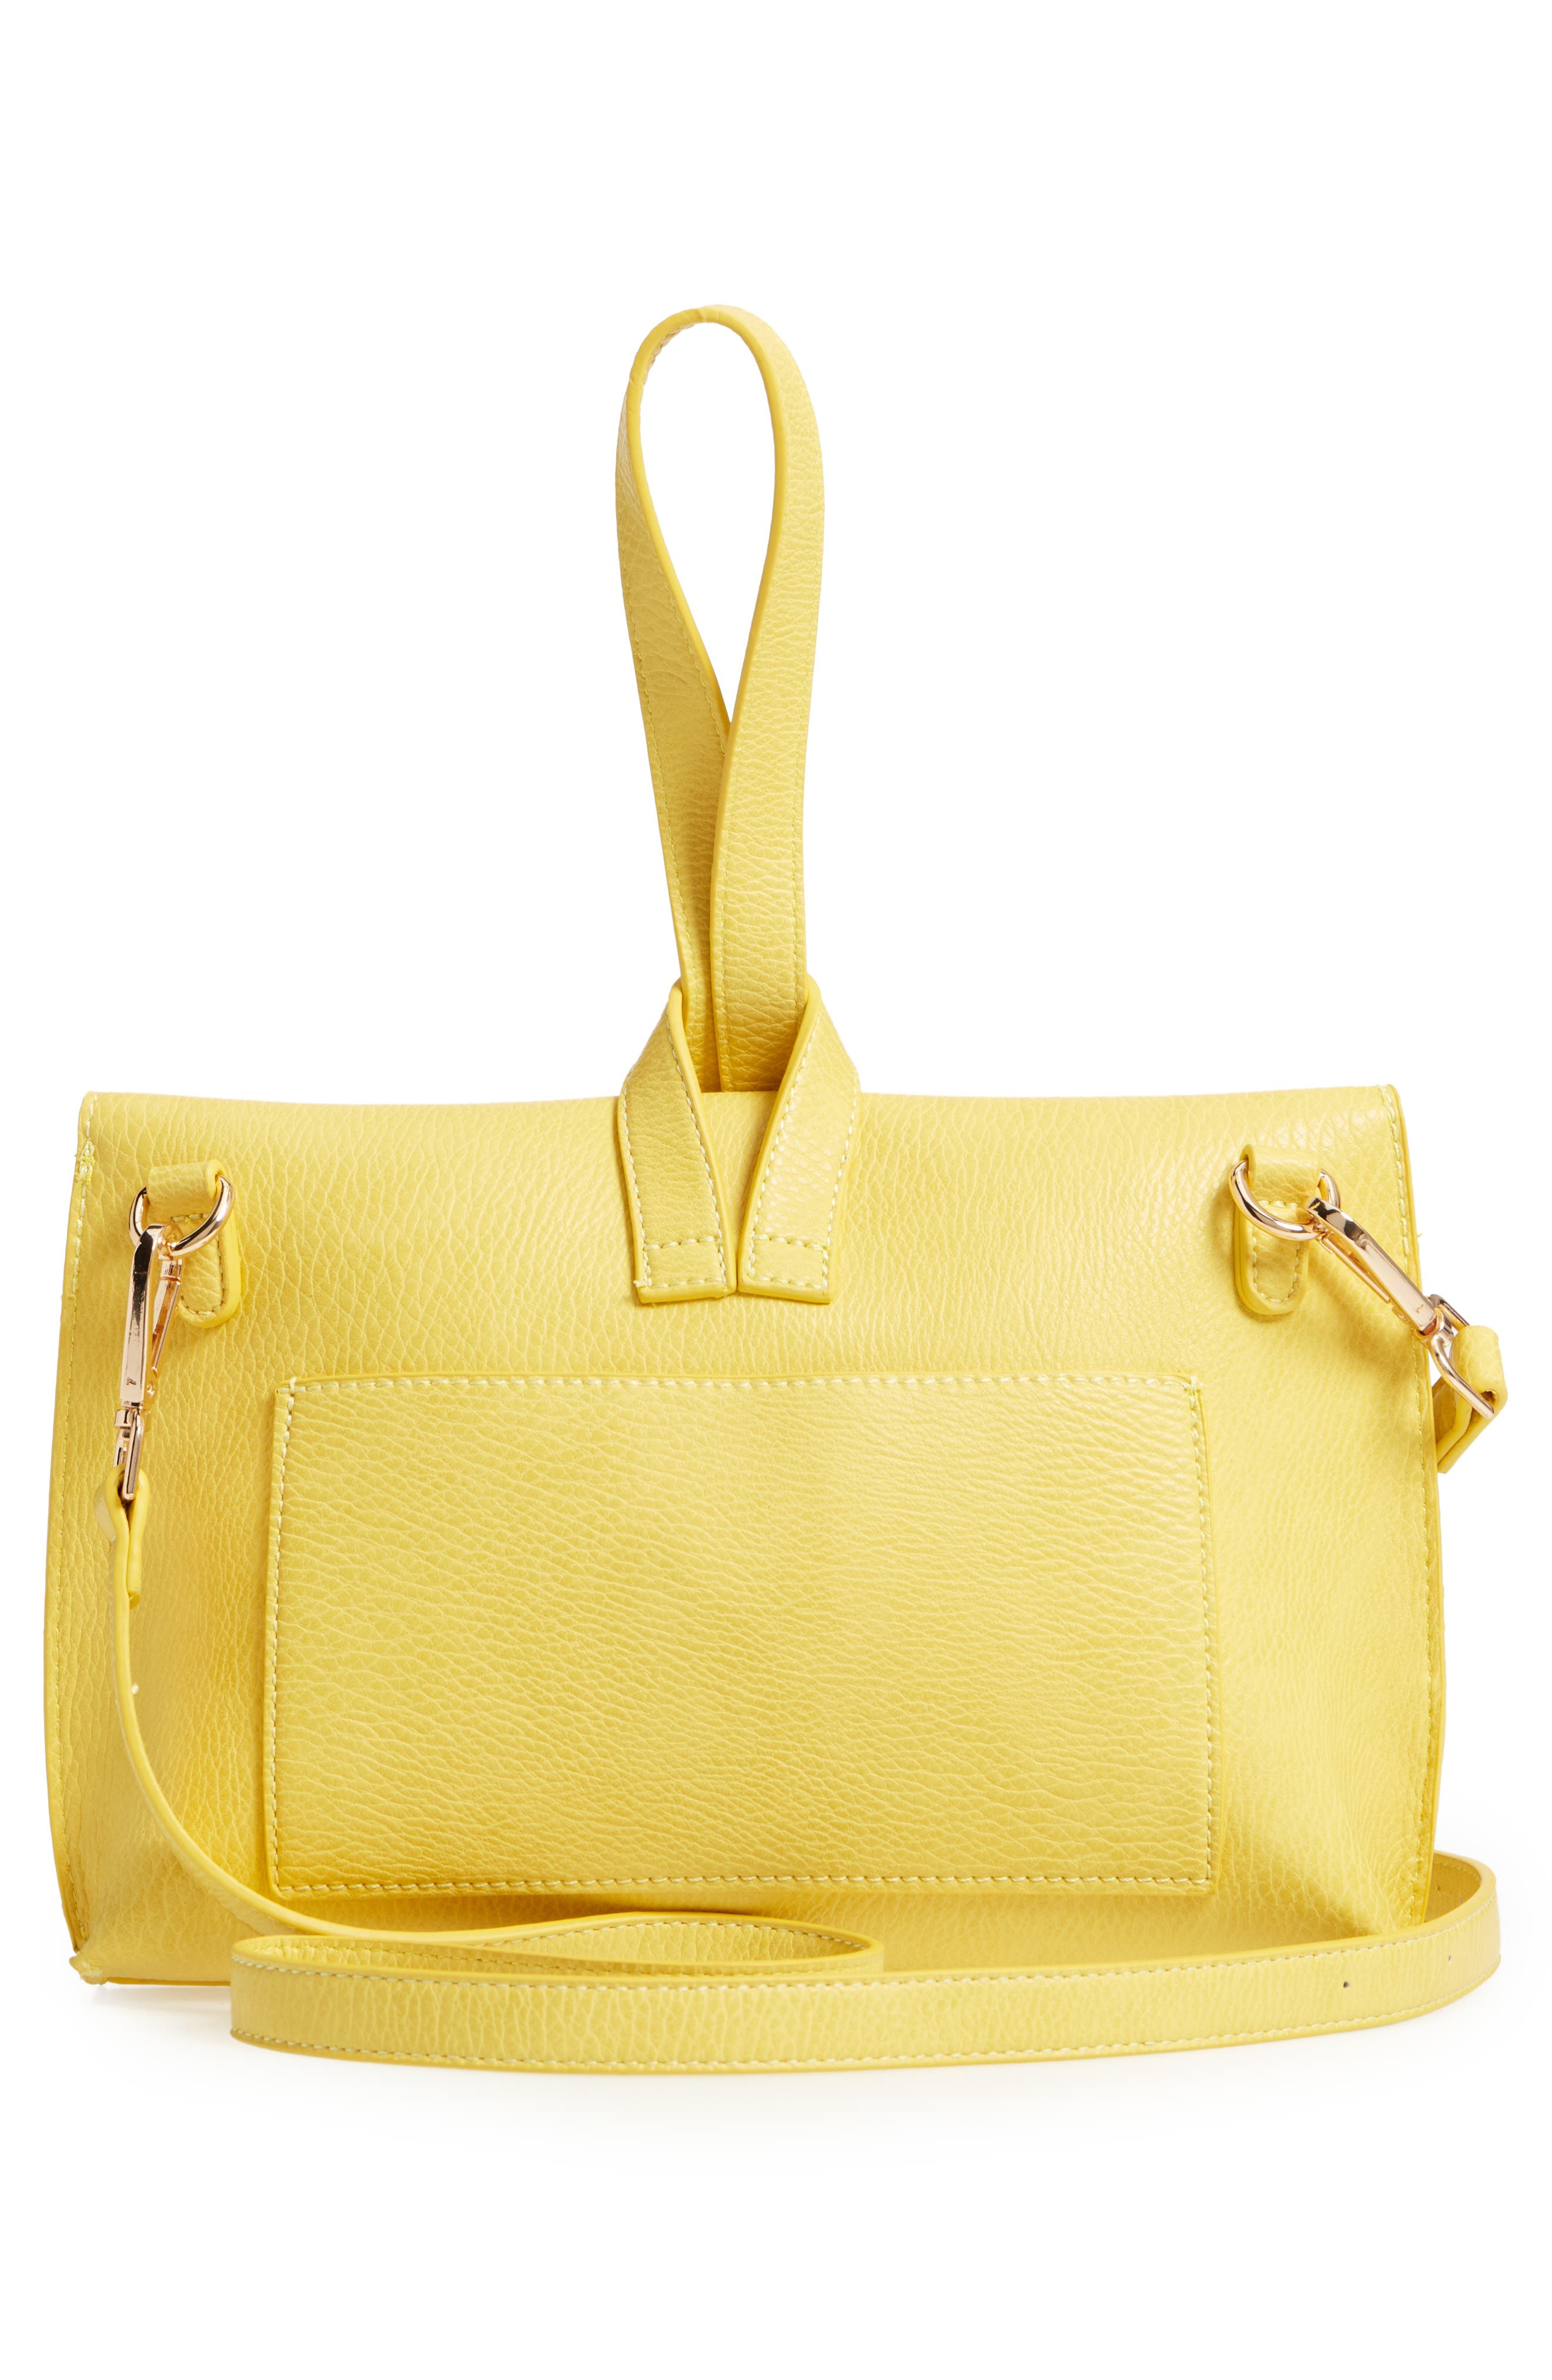 Pull Through Wristlet/Crossbody Bag,                             Alternate thumbnail 3, color,                             Yellow